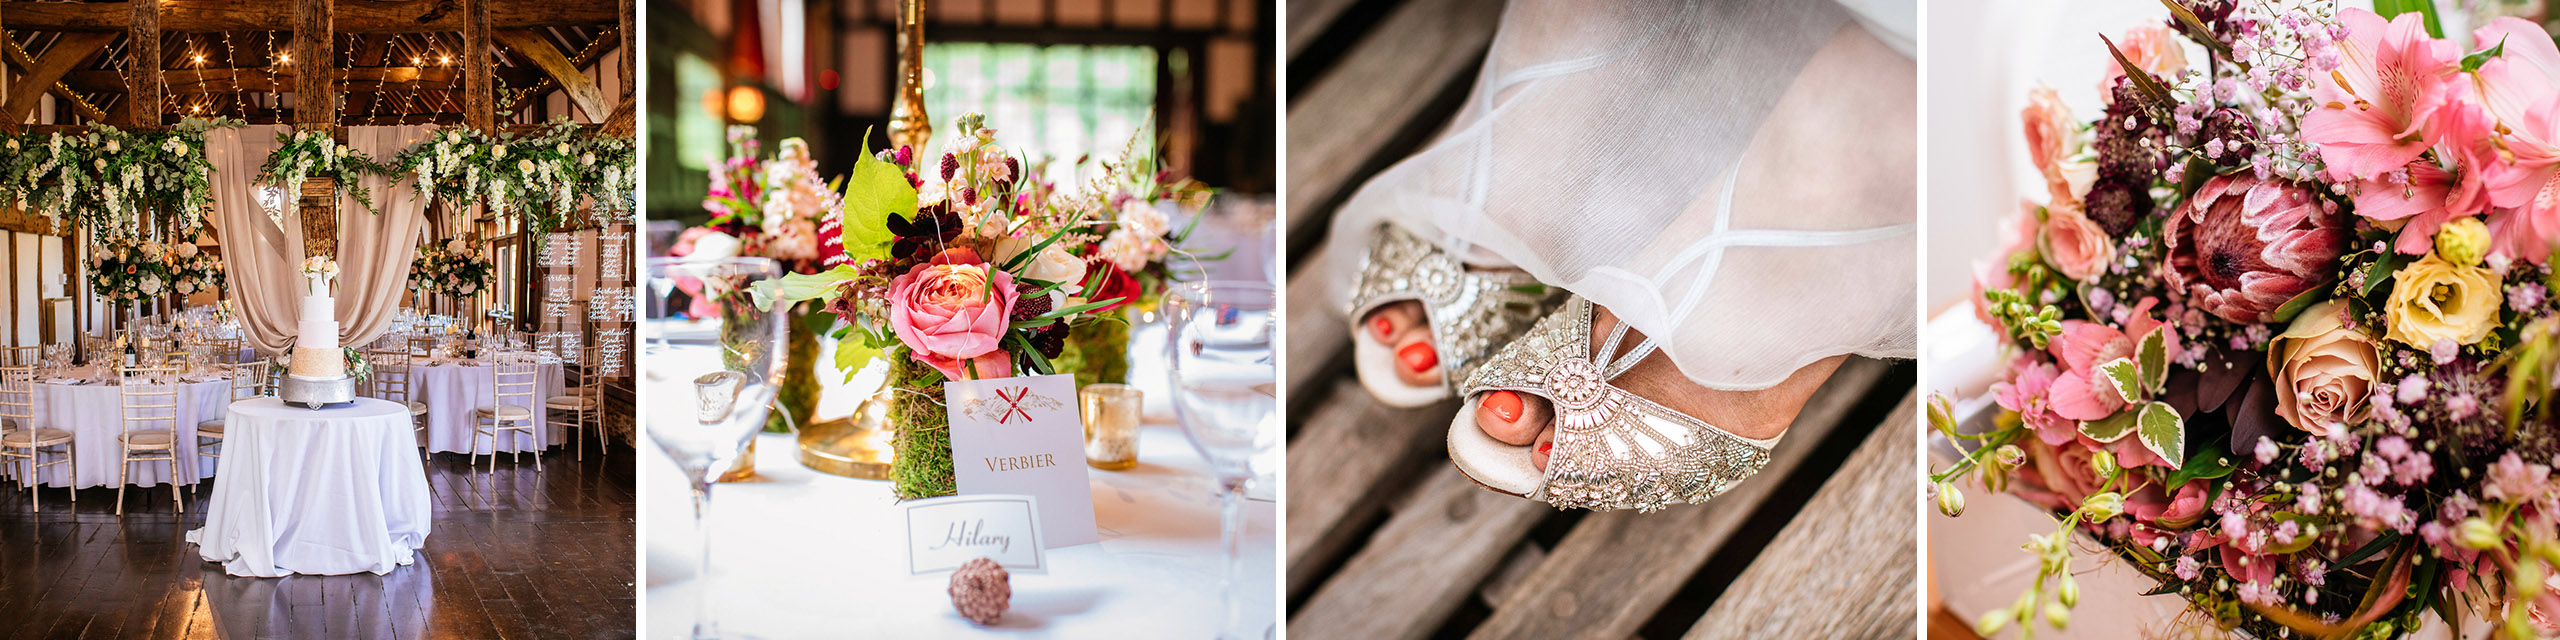 Wedding details at loseley park wedding